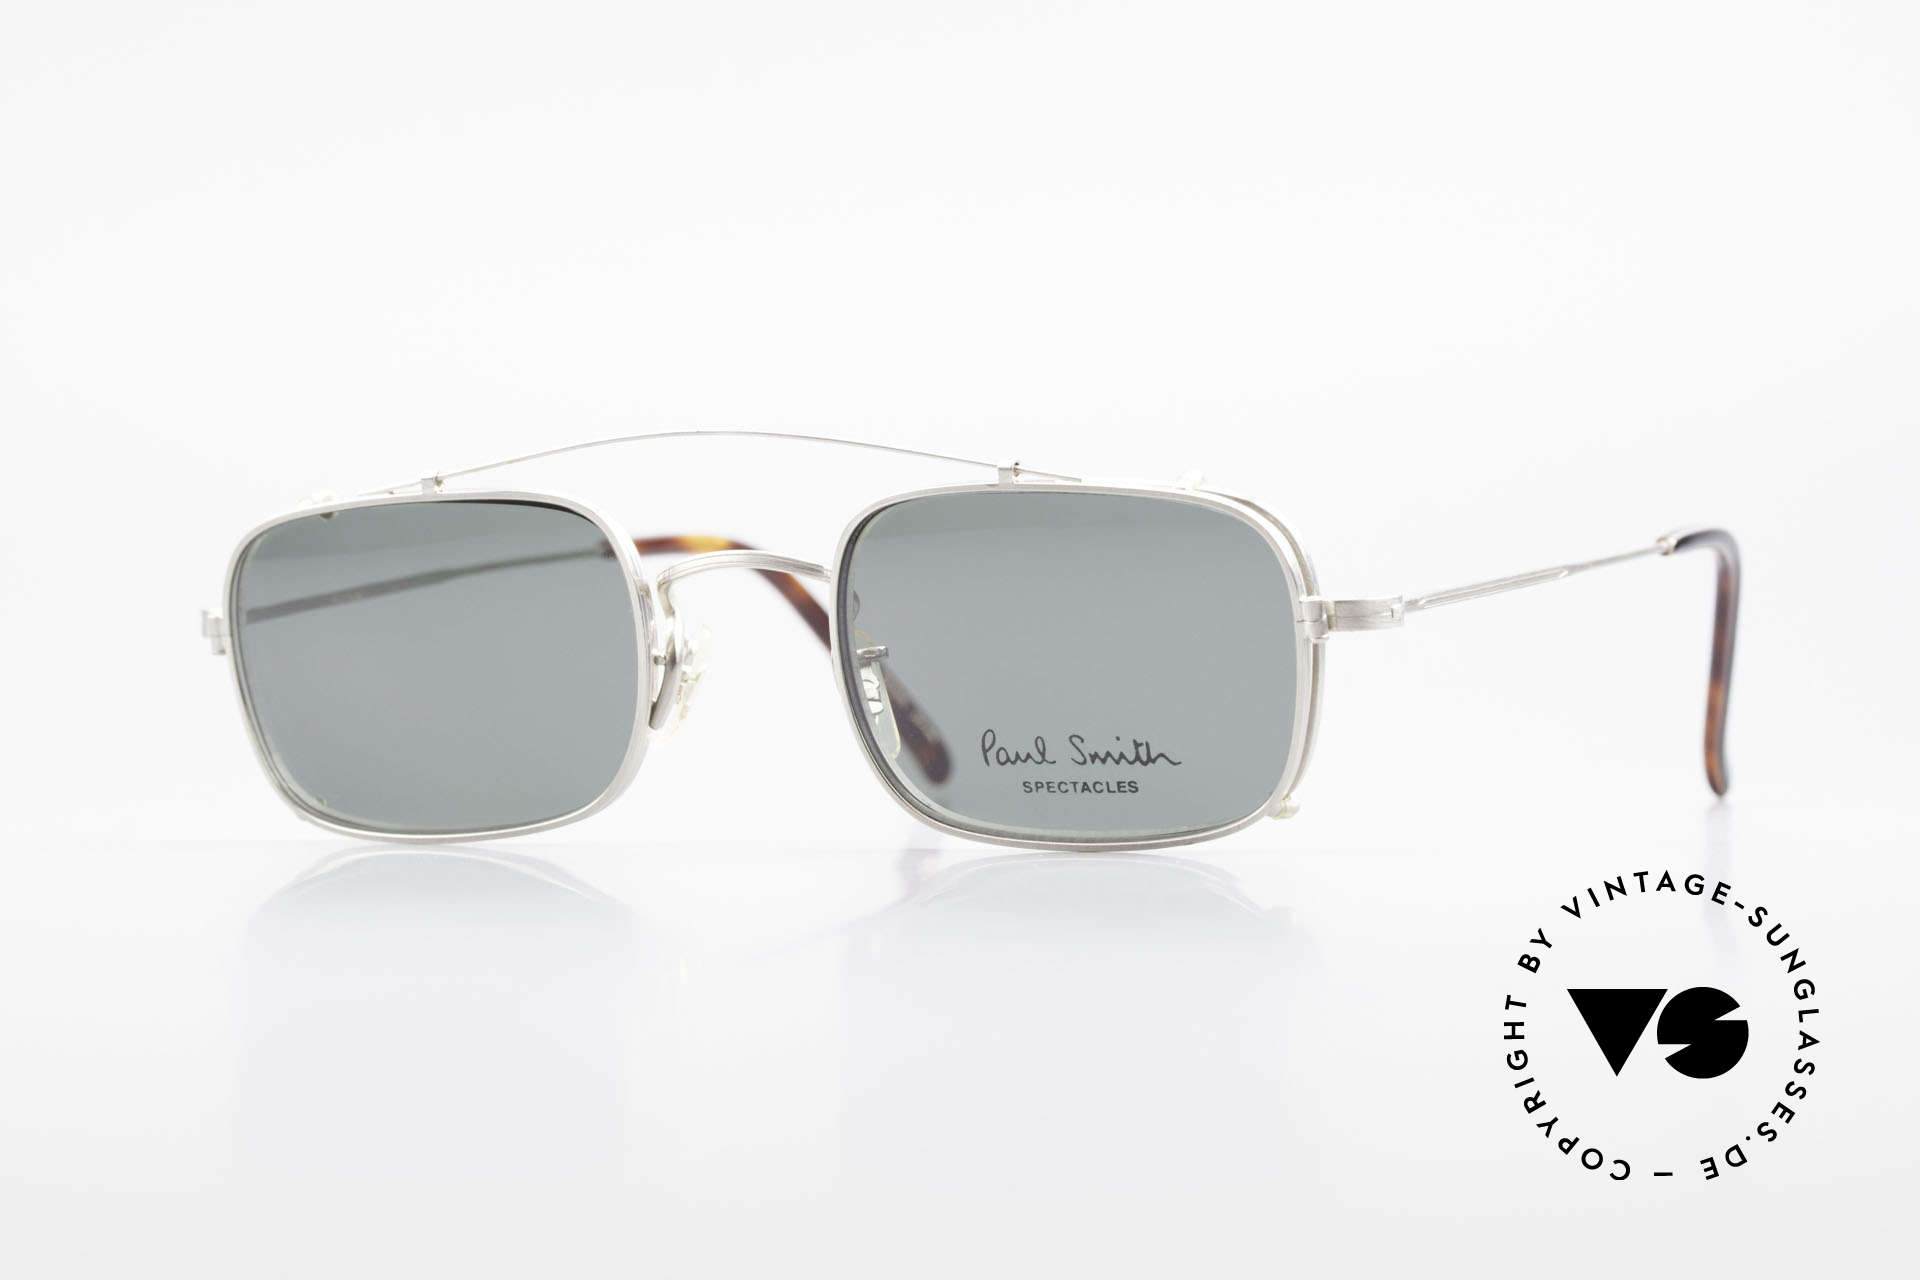 Paul Smith PS101 Square Vintage Frame Clip On, Paul Smith vintage glasses from the late 80's/early 90's, Made for Men and Women